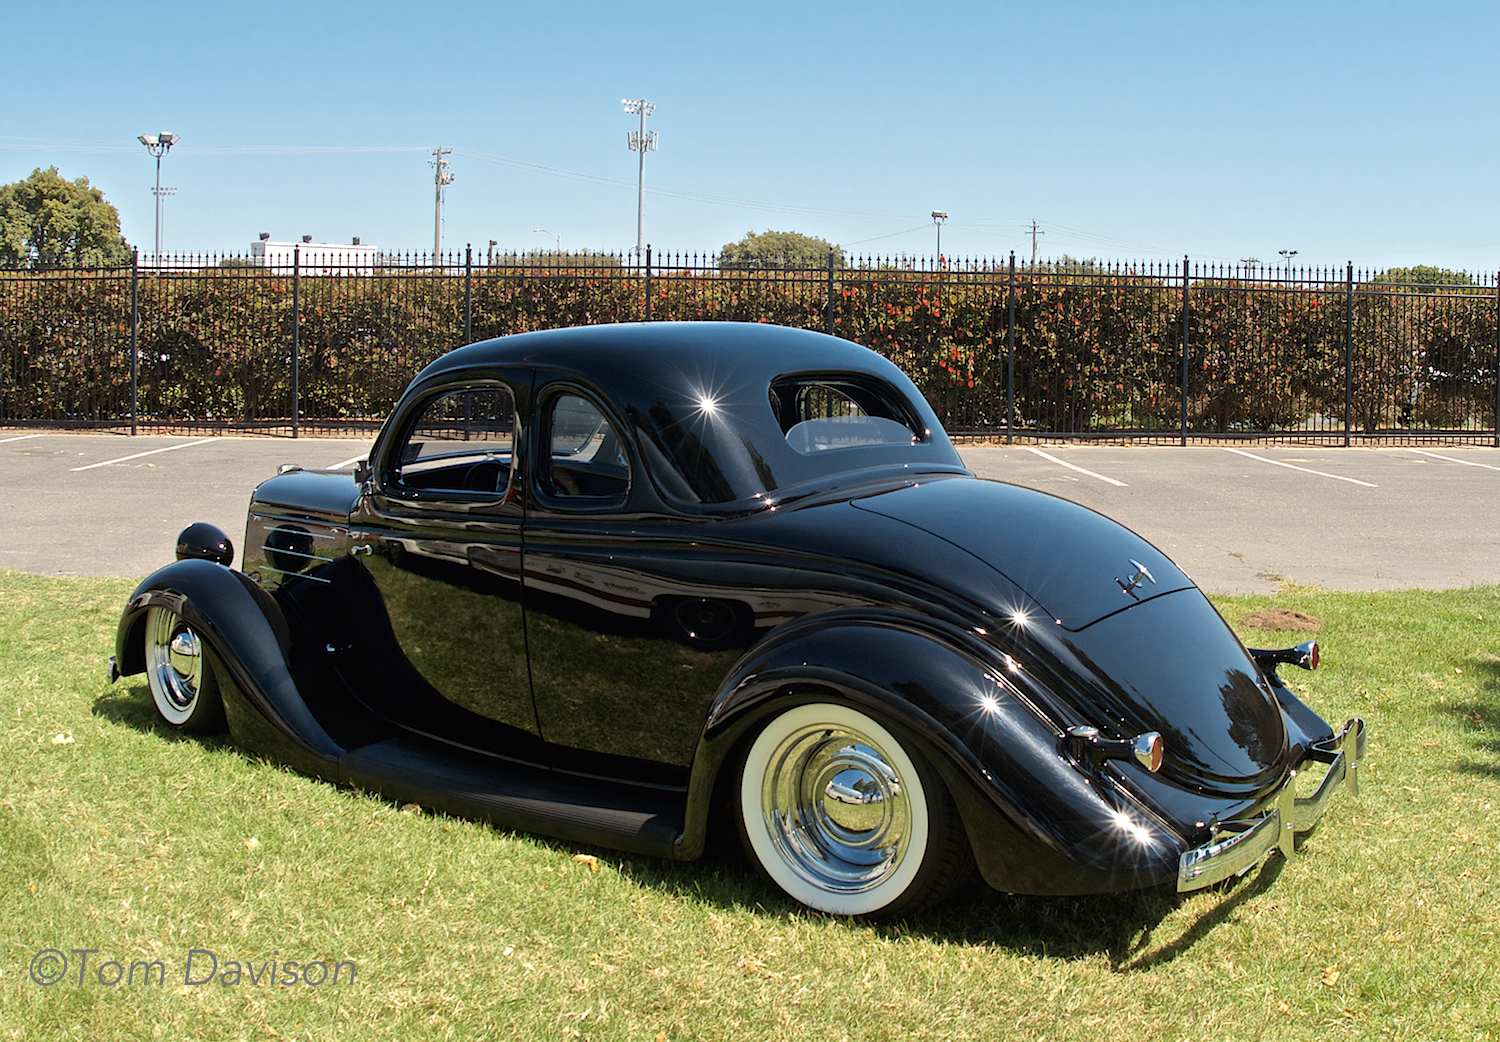 Pristine example of a 1935 Ford street rod coupe